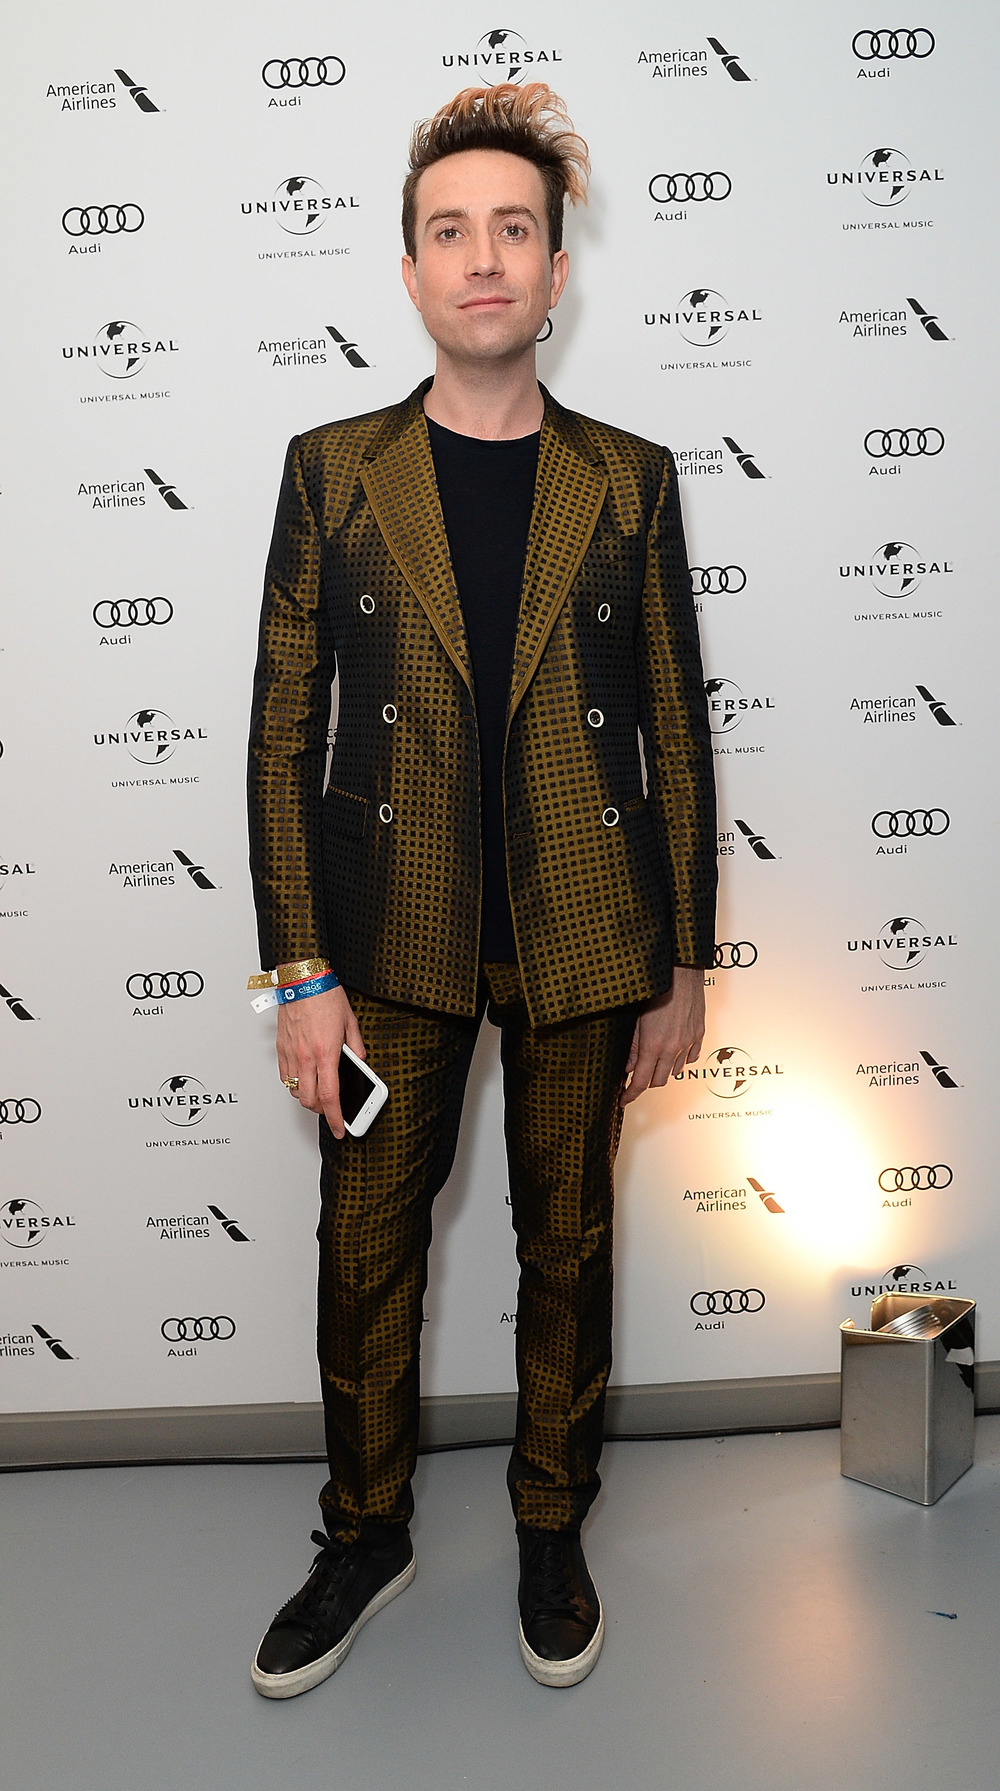 DMB-UNIVERSAL_BRITS_AFTERPARTY10.JPG